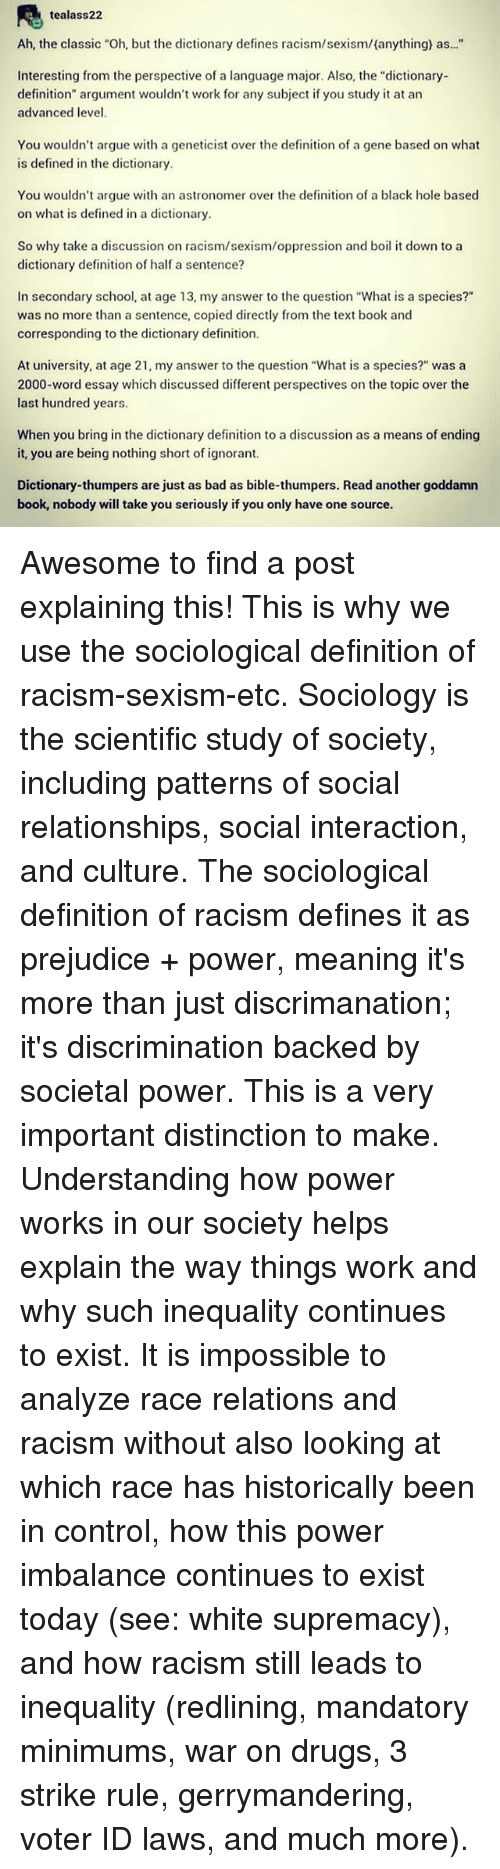 power oppression and society sociology essay The swinish multitude essays, articles and comments traversing politics, economics, sociology, psychology, power, oppression and ethics oh, and culture and the arts.